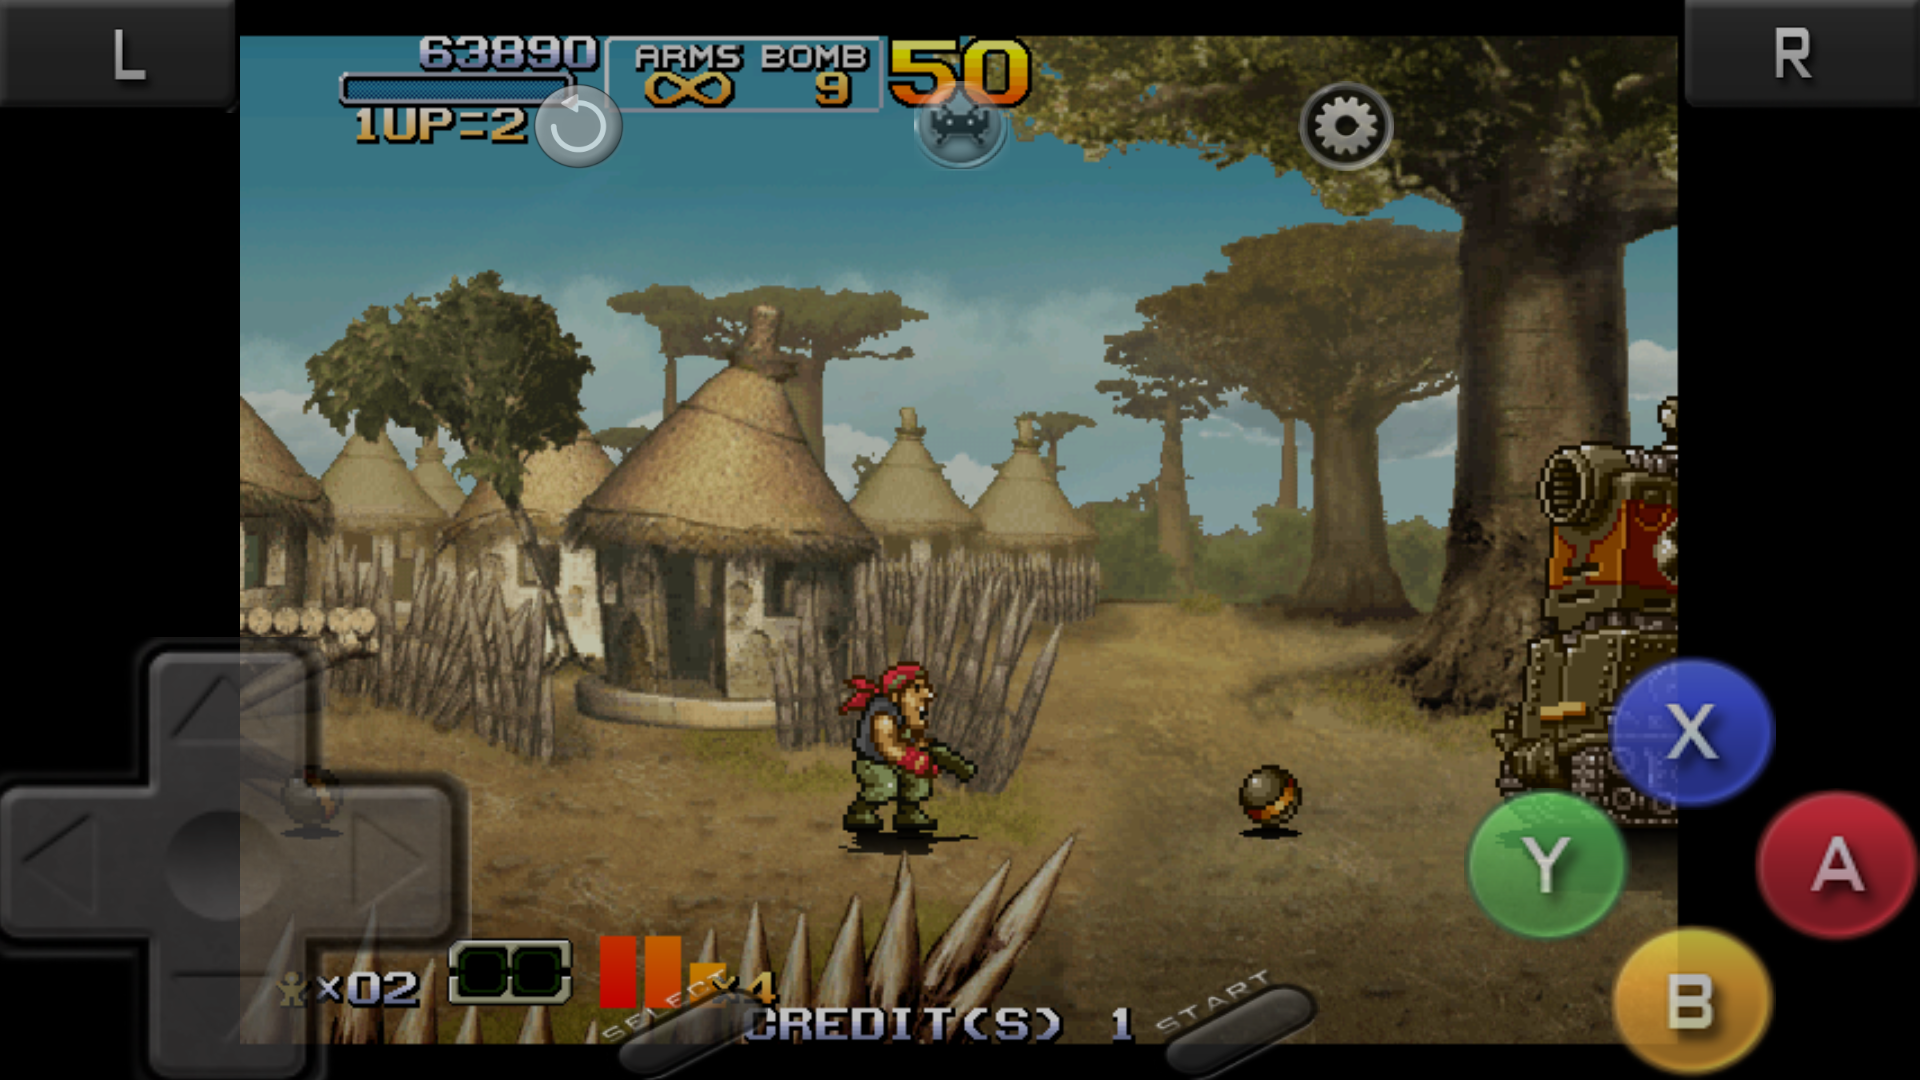 Developers - Make libretro reicast work on ARM (iOS/Android) and